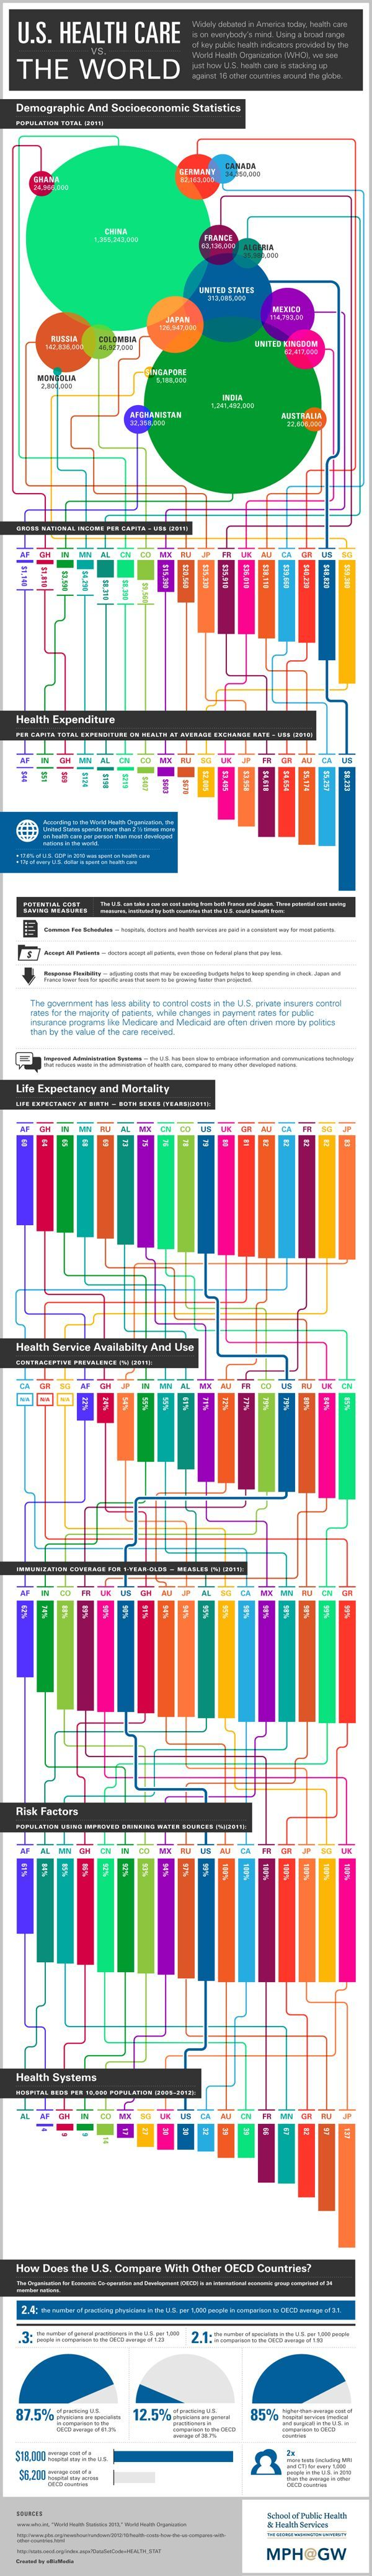 Infographic: Health care in the US vs. the world